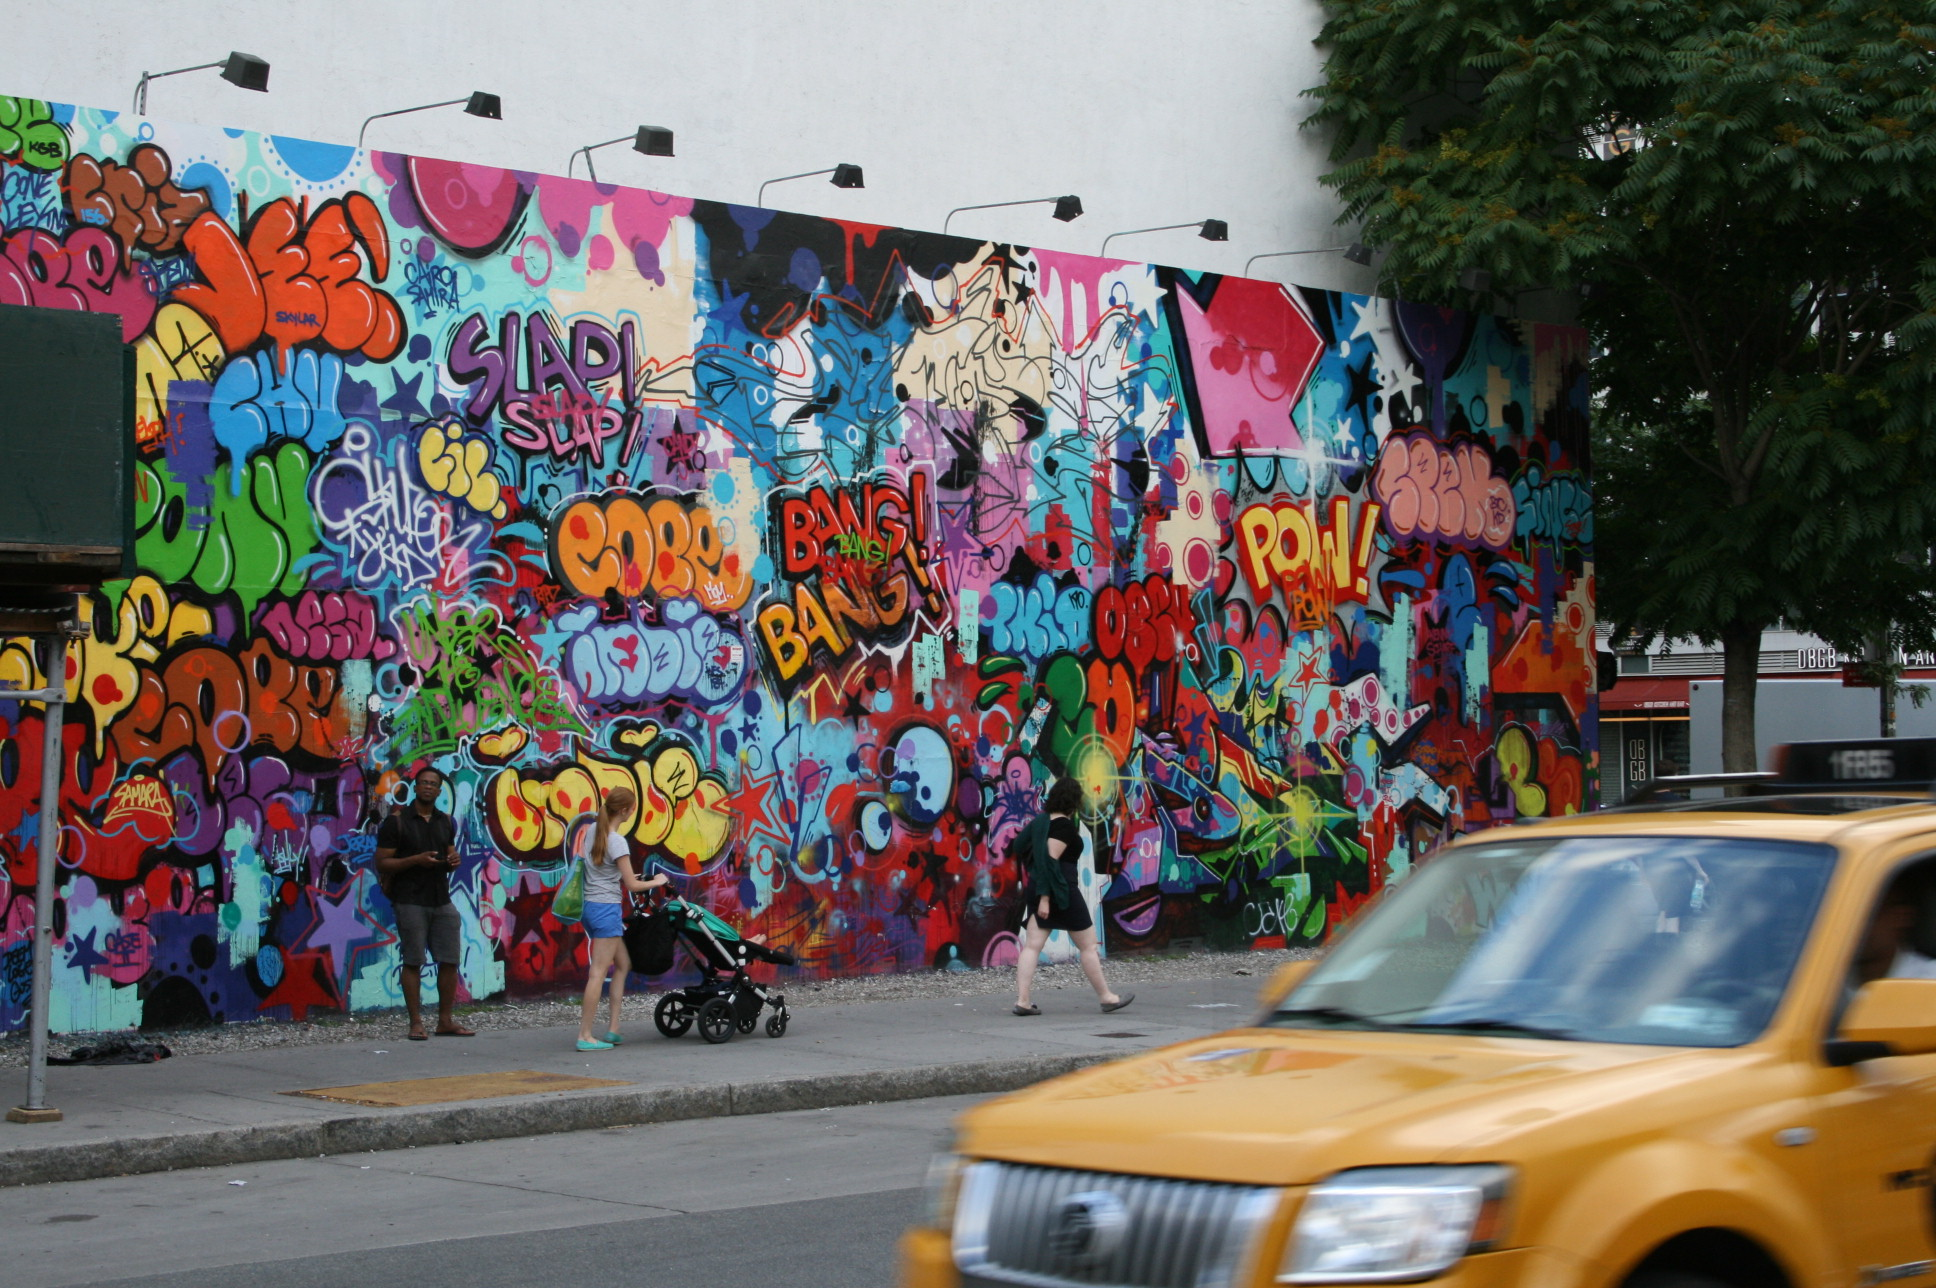 Bowery wall mural June 2014 by Cope2